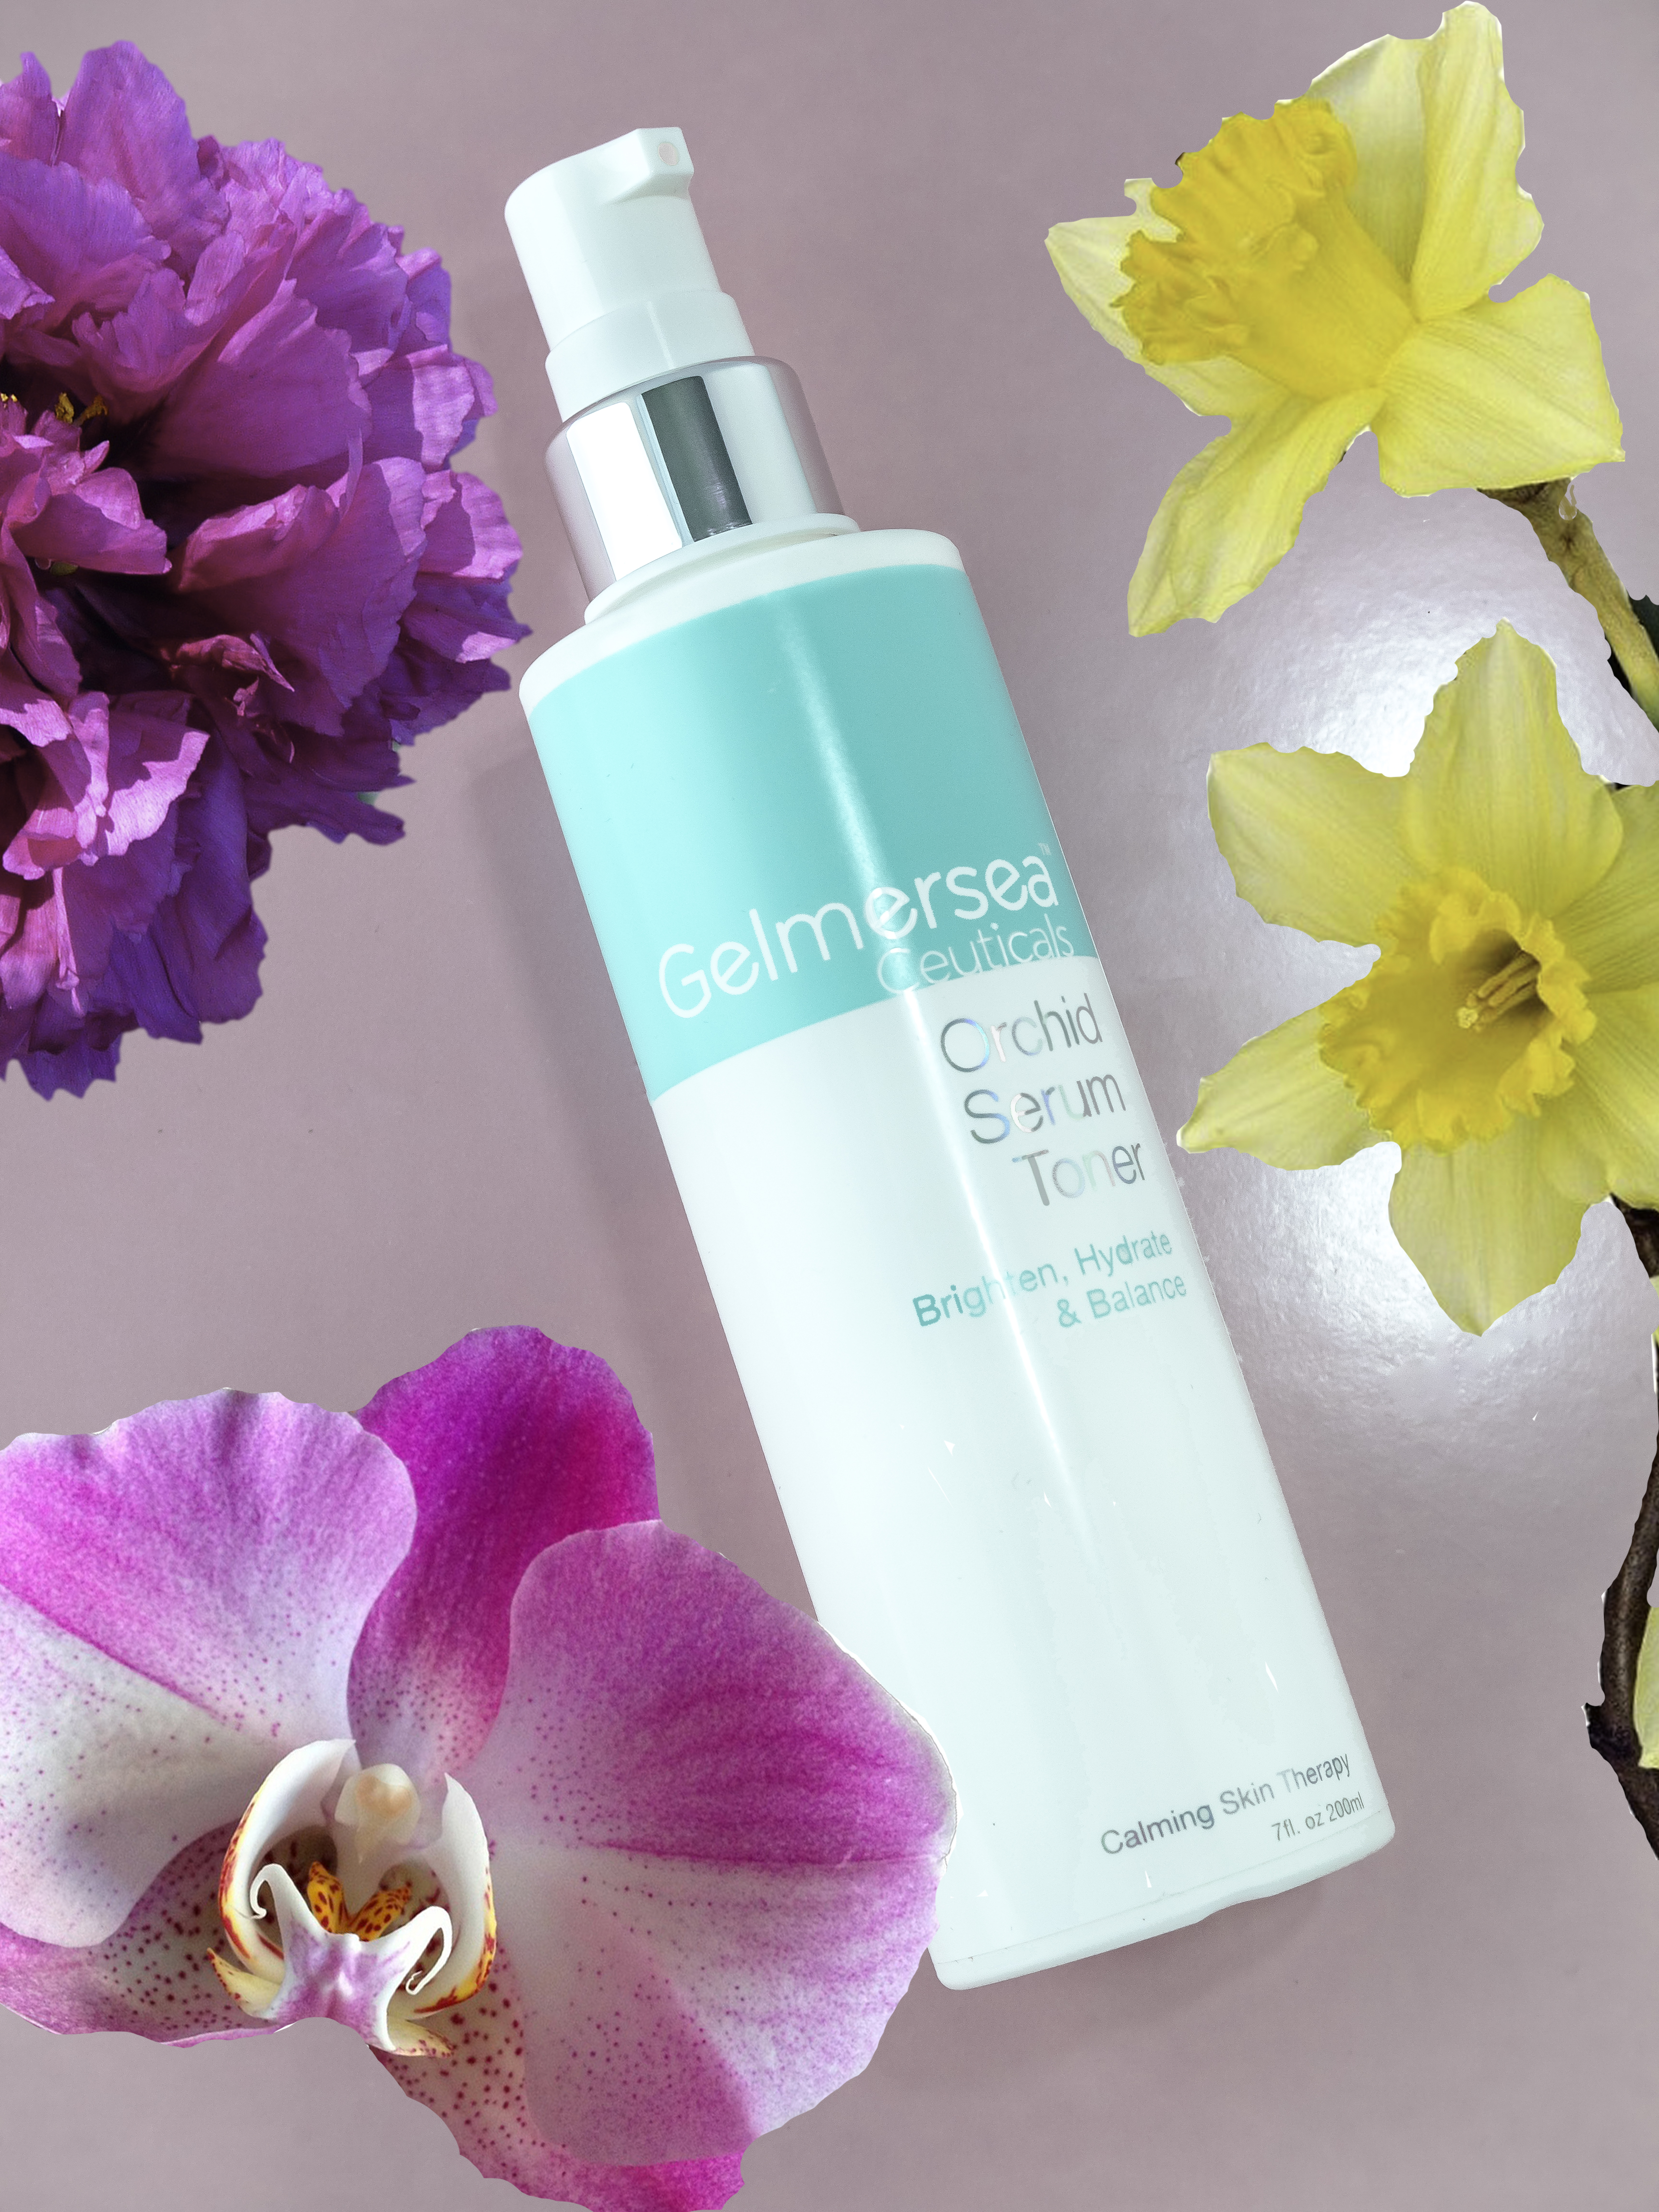 Orchid Serum Toner contains peony extract, orchid, and daffodil extracts